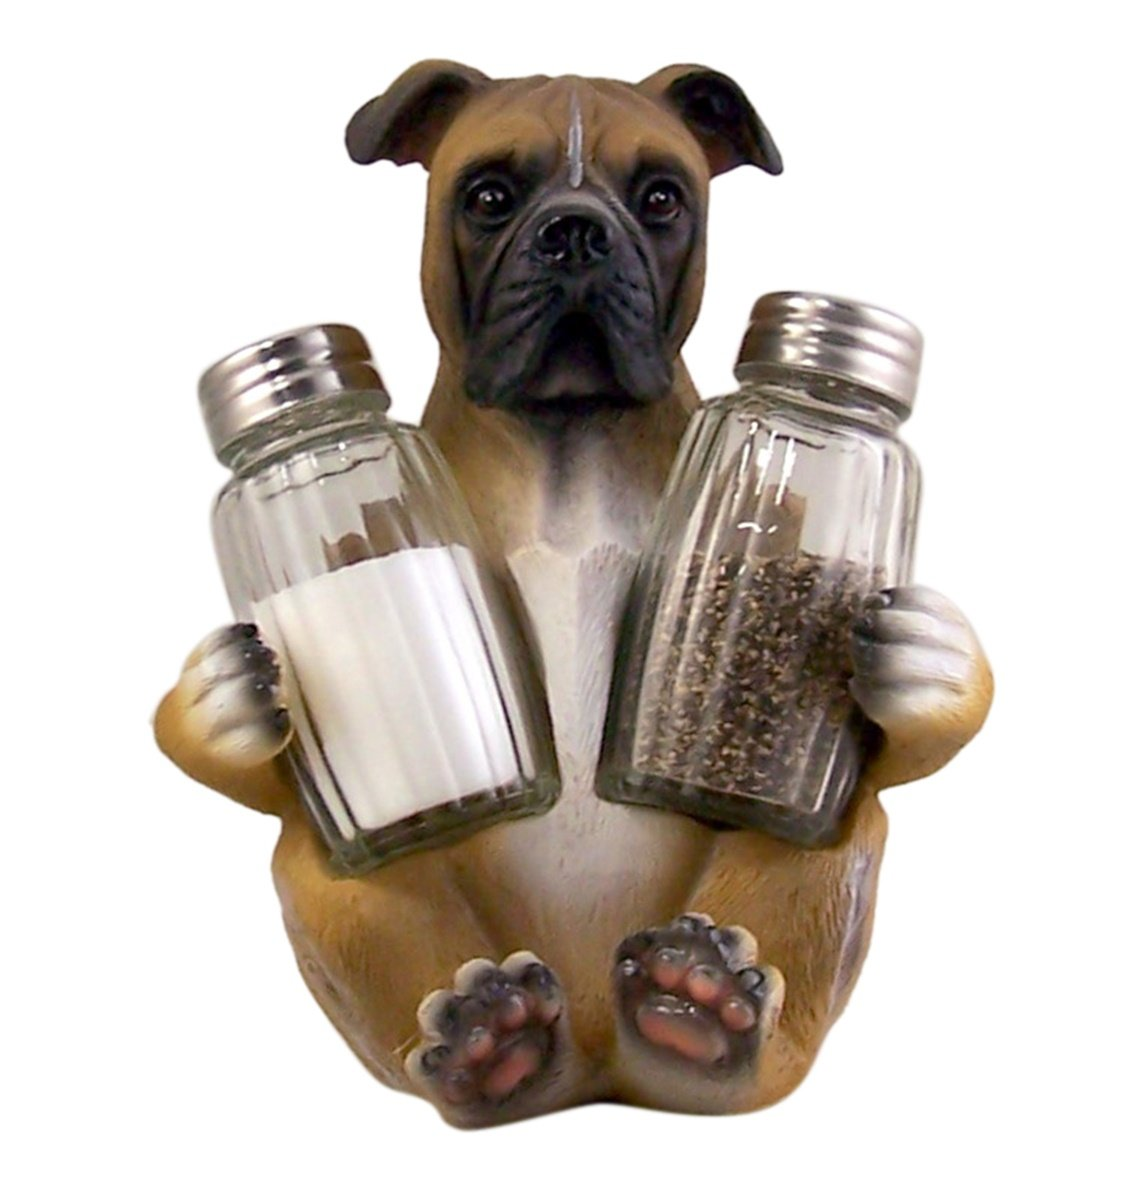 Boxer Dog Salt and Pepper Shaker Holder (Shakers Included) DWK Corporation